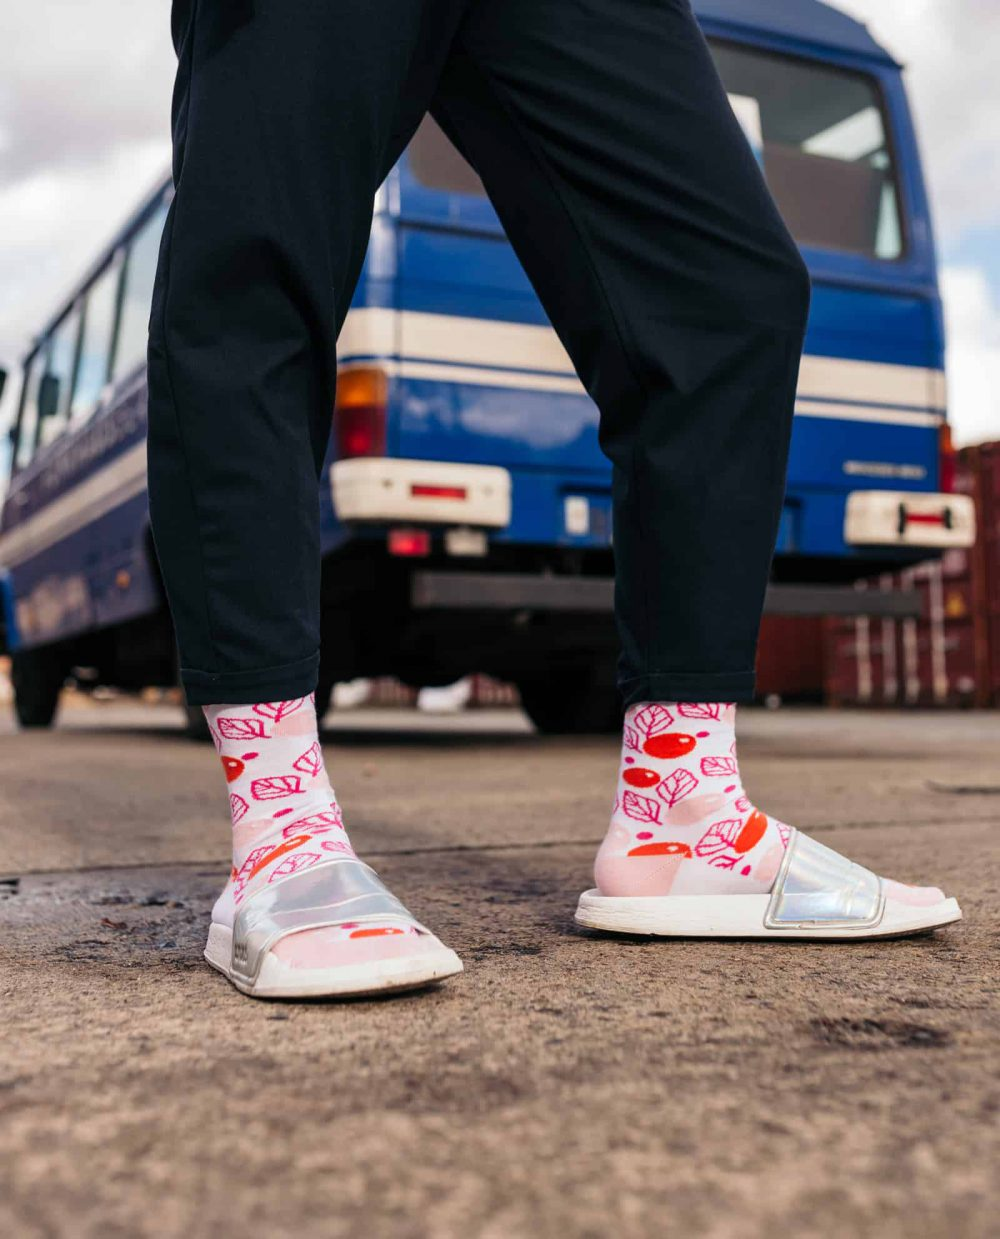 socks for men with pink and floral design